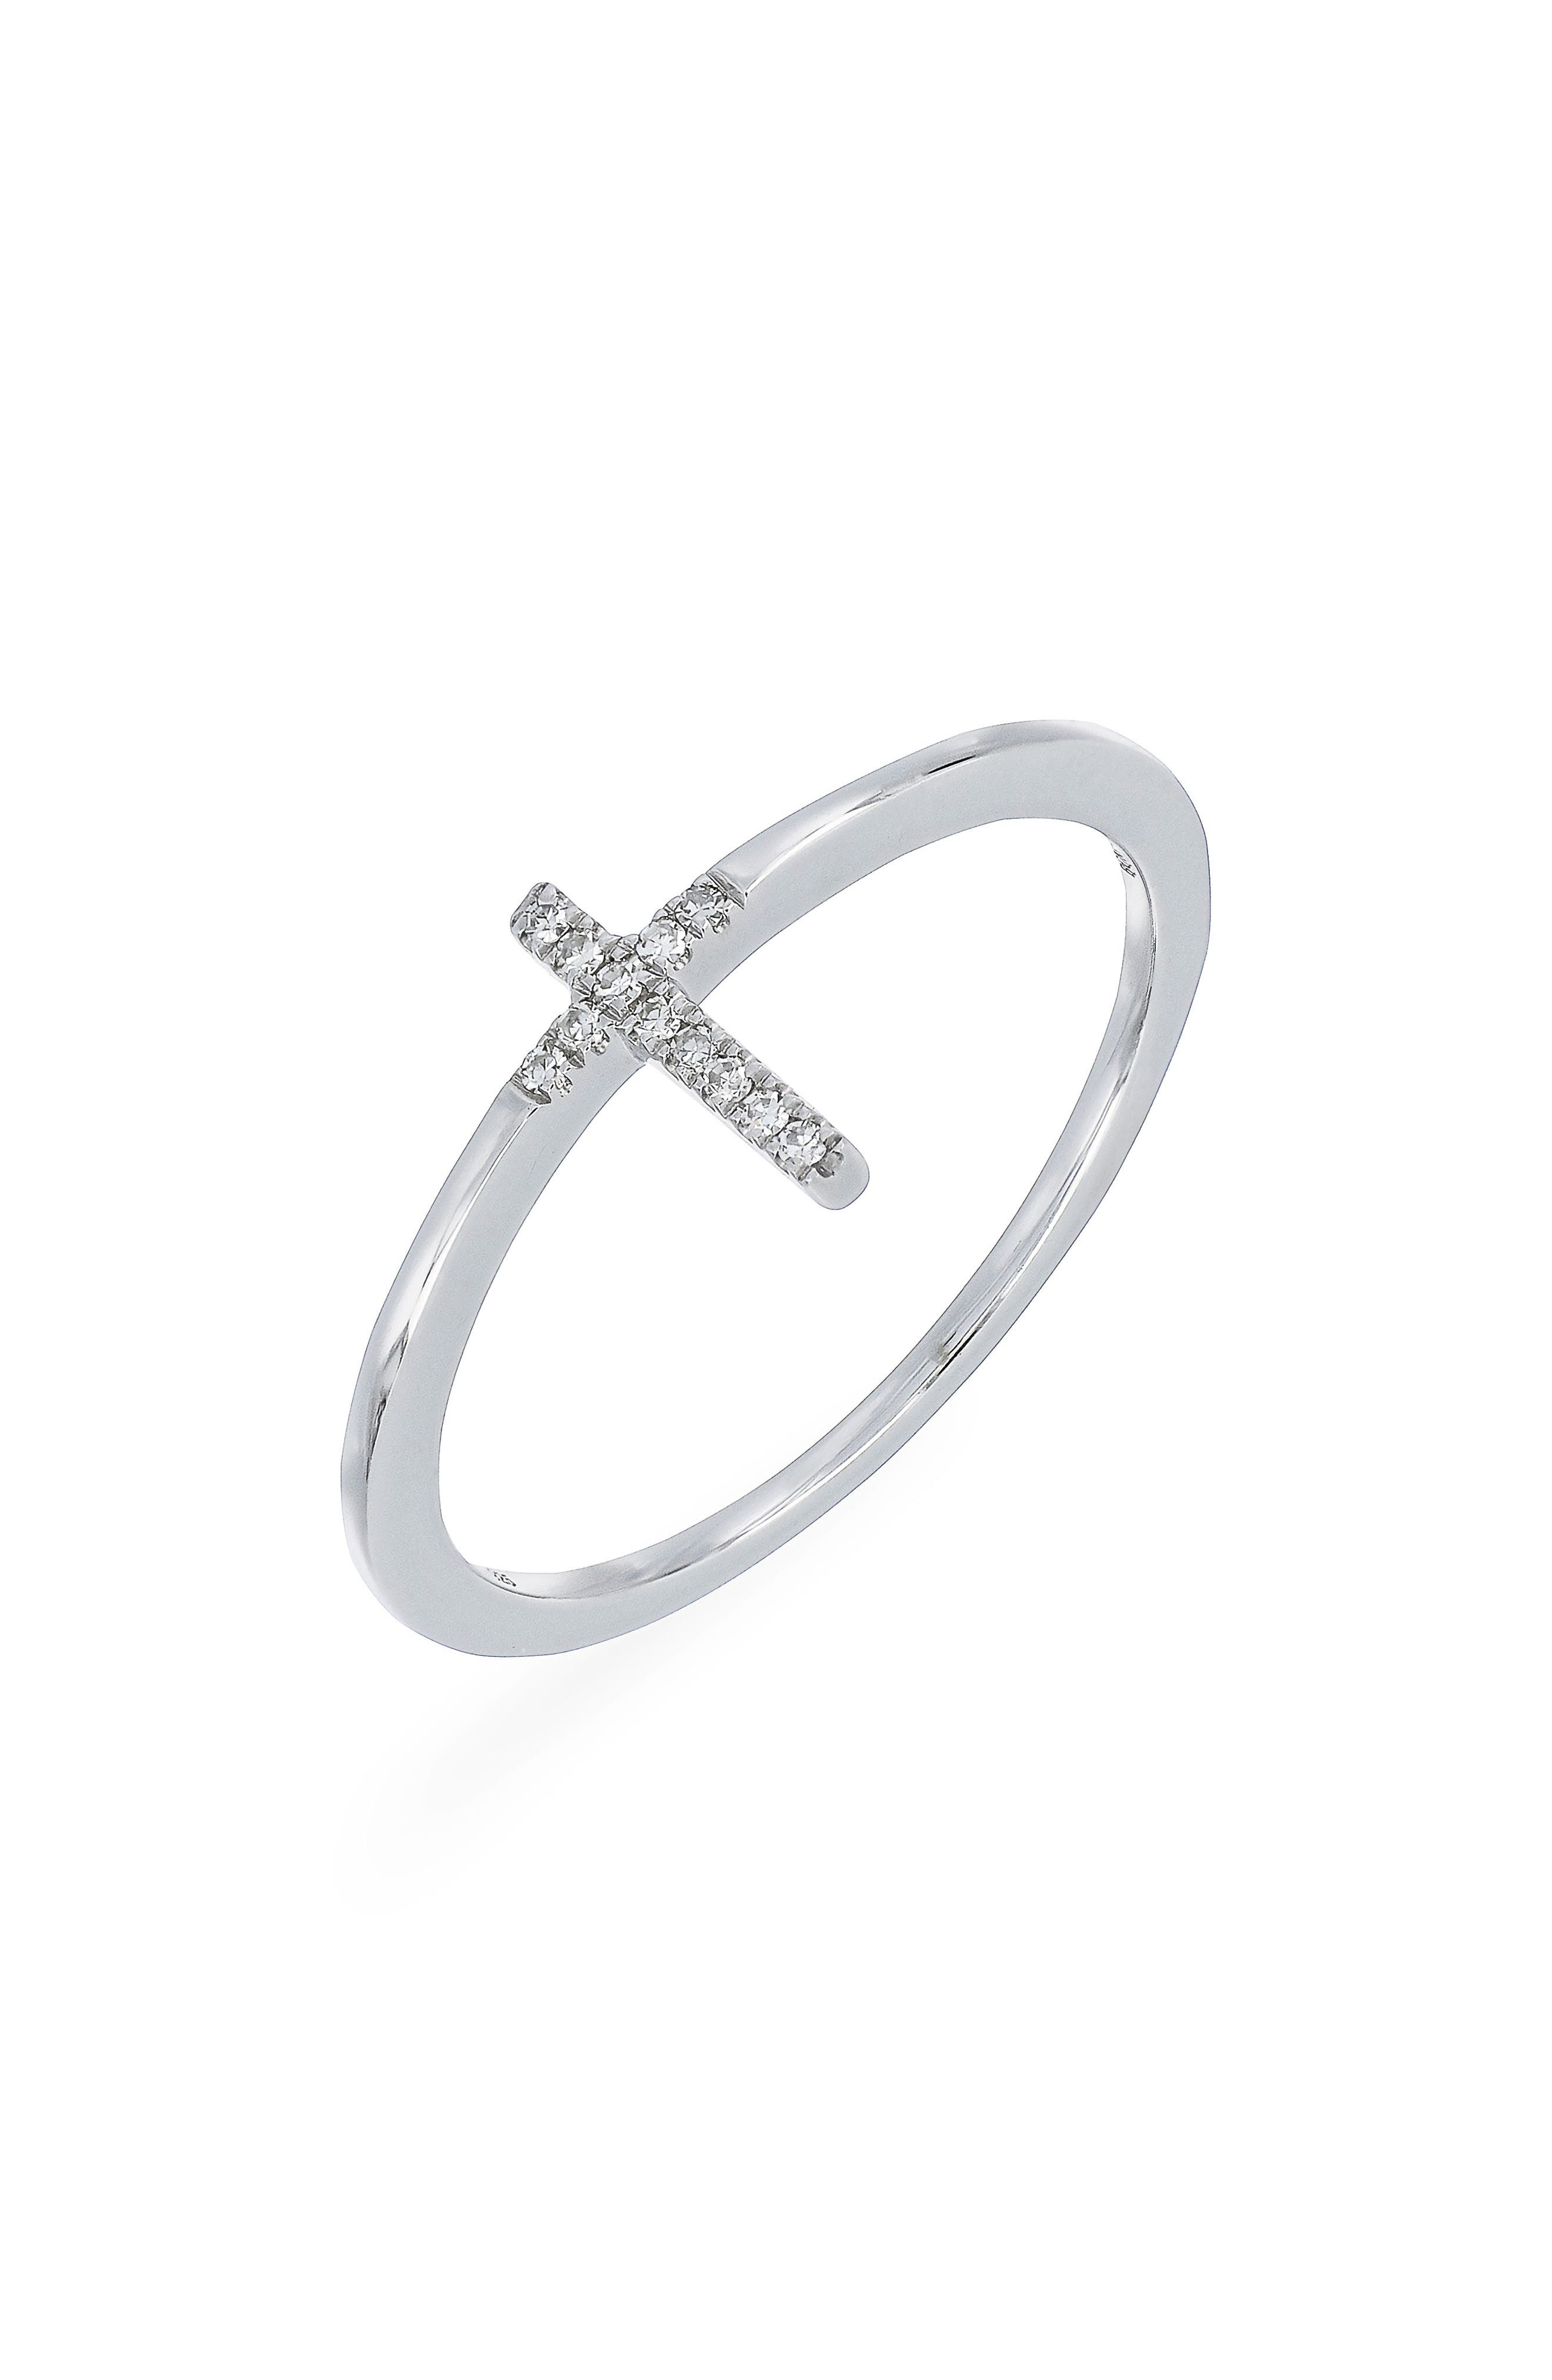 Carrière Diamond Cross Ring,                         Main,                         color, STERLING SILVER/ DIAMOND